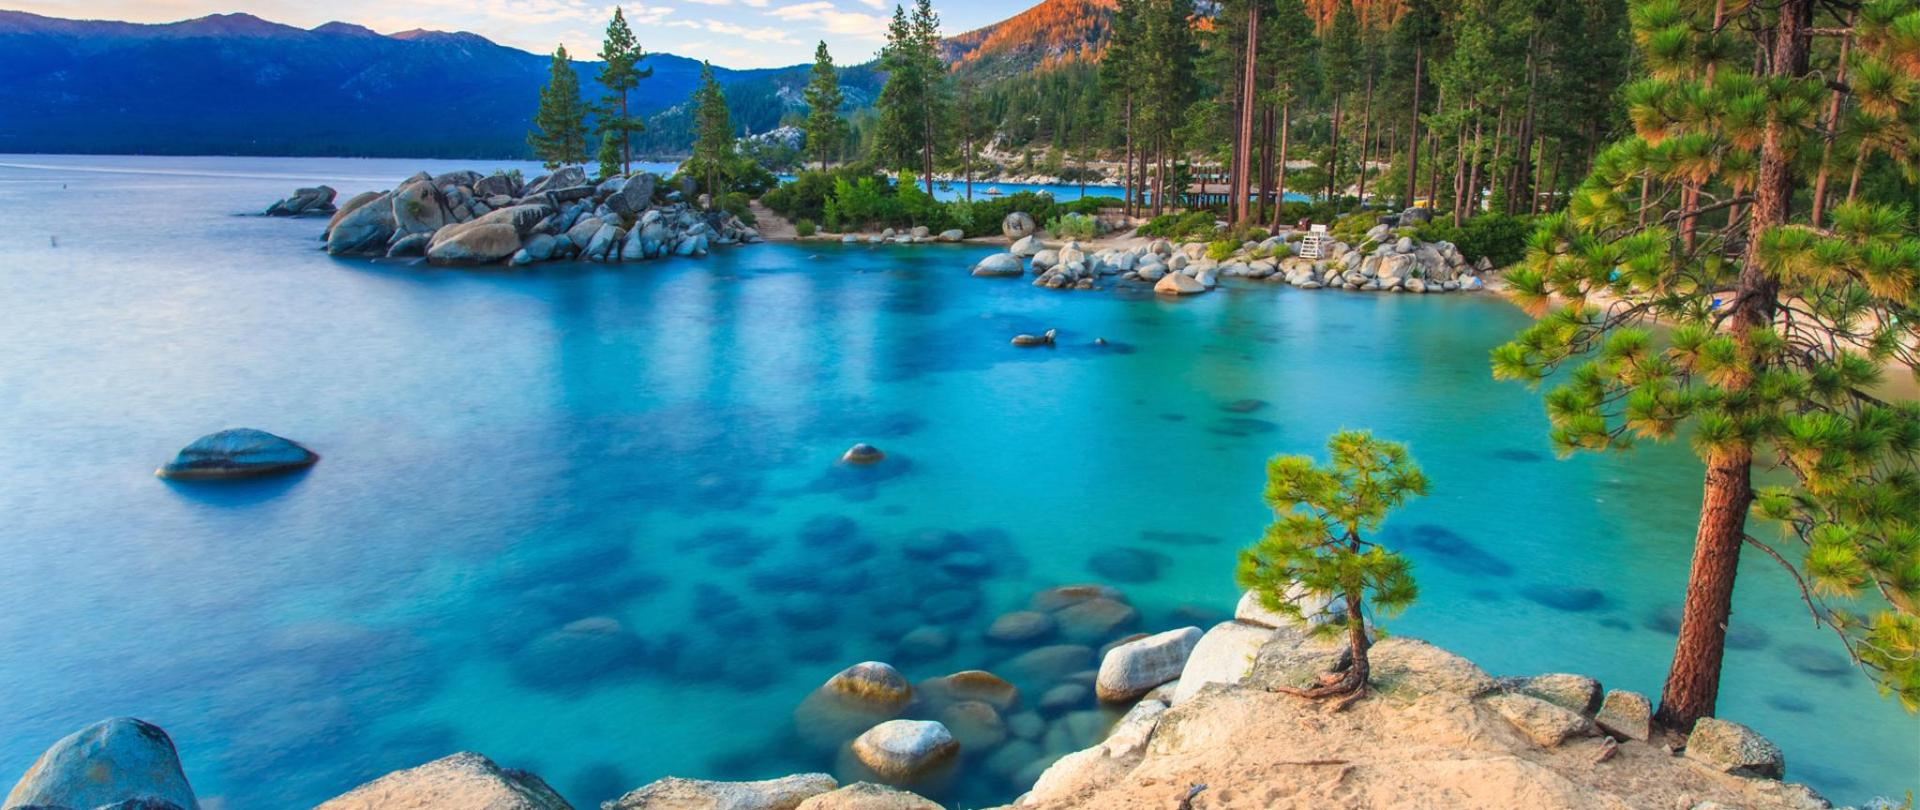 Lake-Tahoe-blue-water.jpg